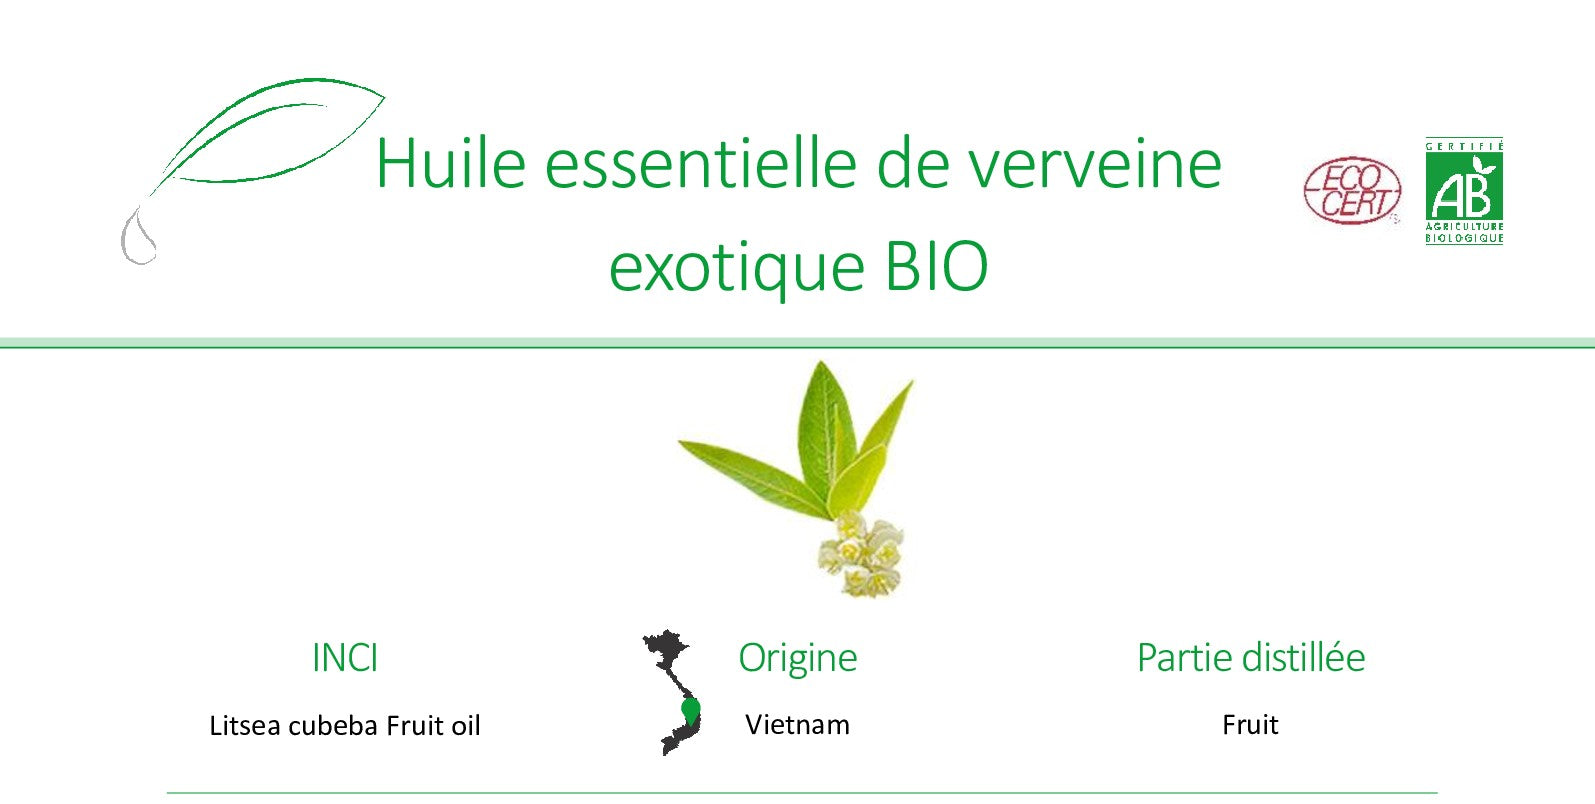 INCI Litsea cubeba Fruit oil Origine Vietnam Partie distillée Fruit